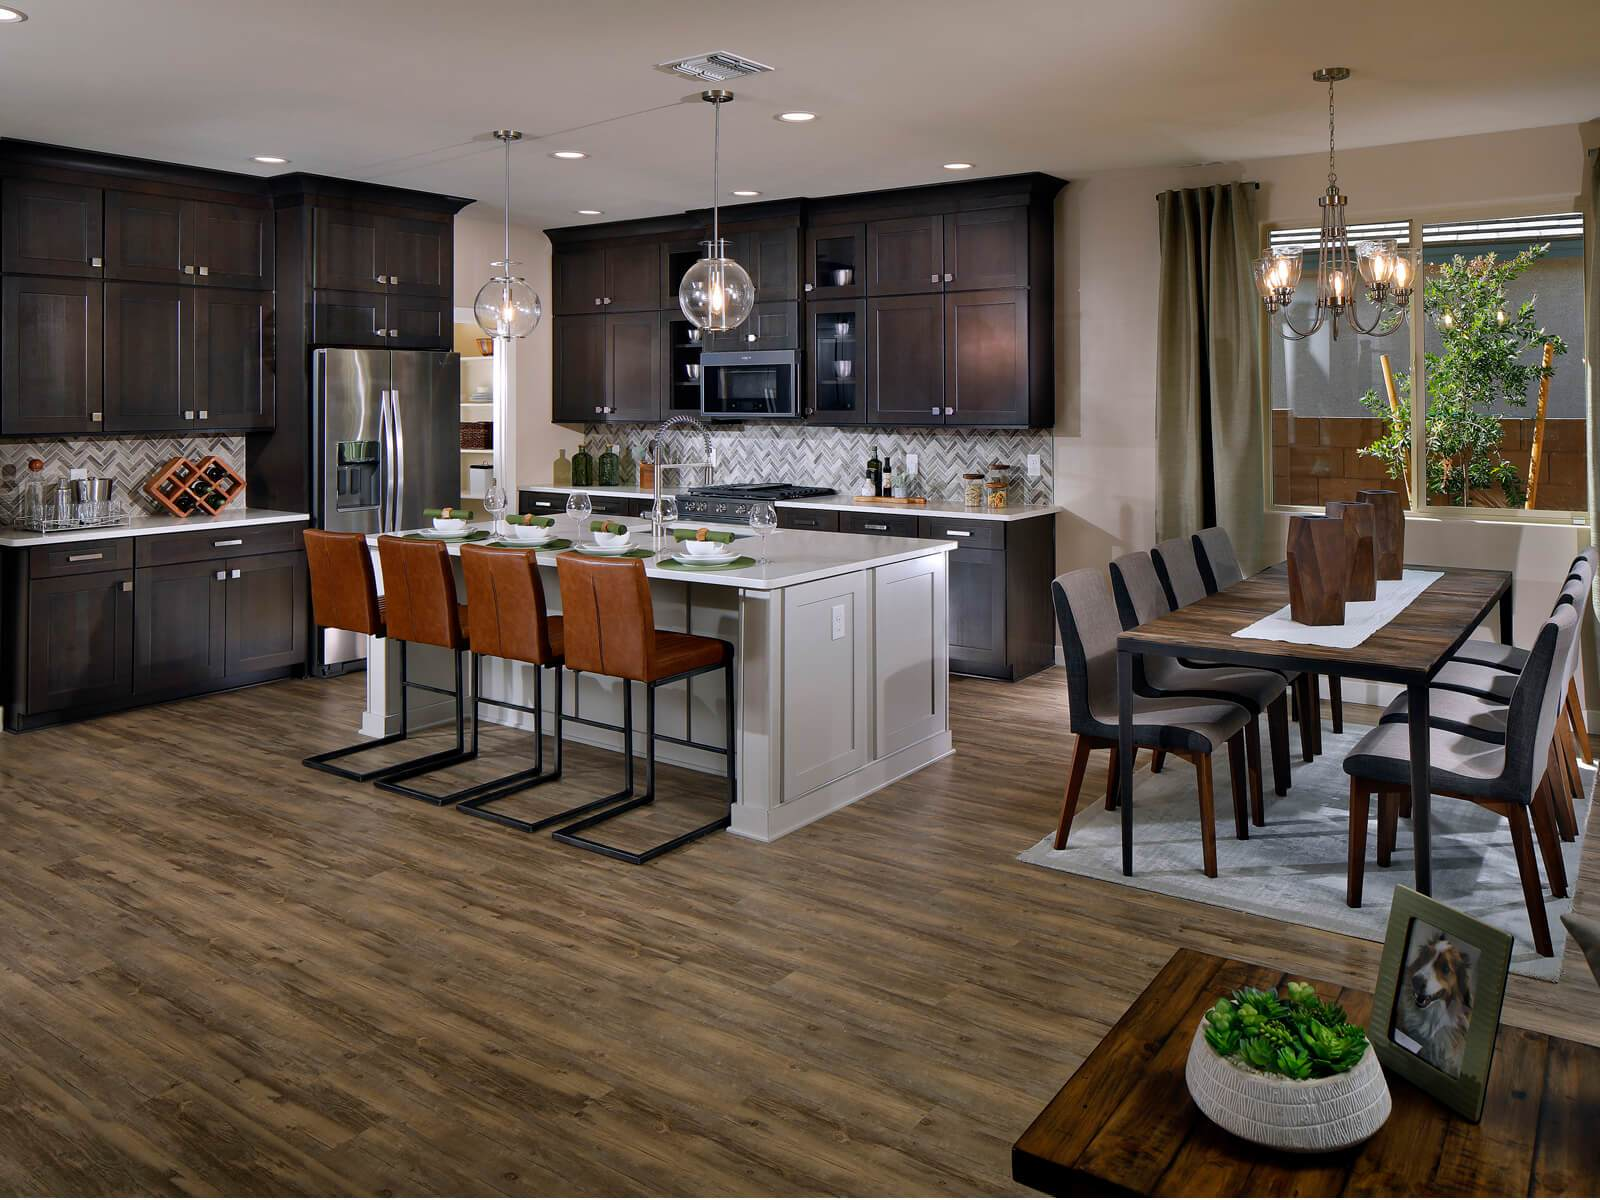 Kitchen featured in the Promenade By Meritage Homes in Tucson, AZ